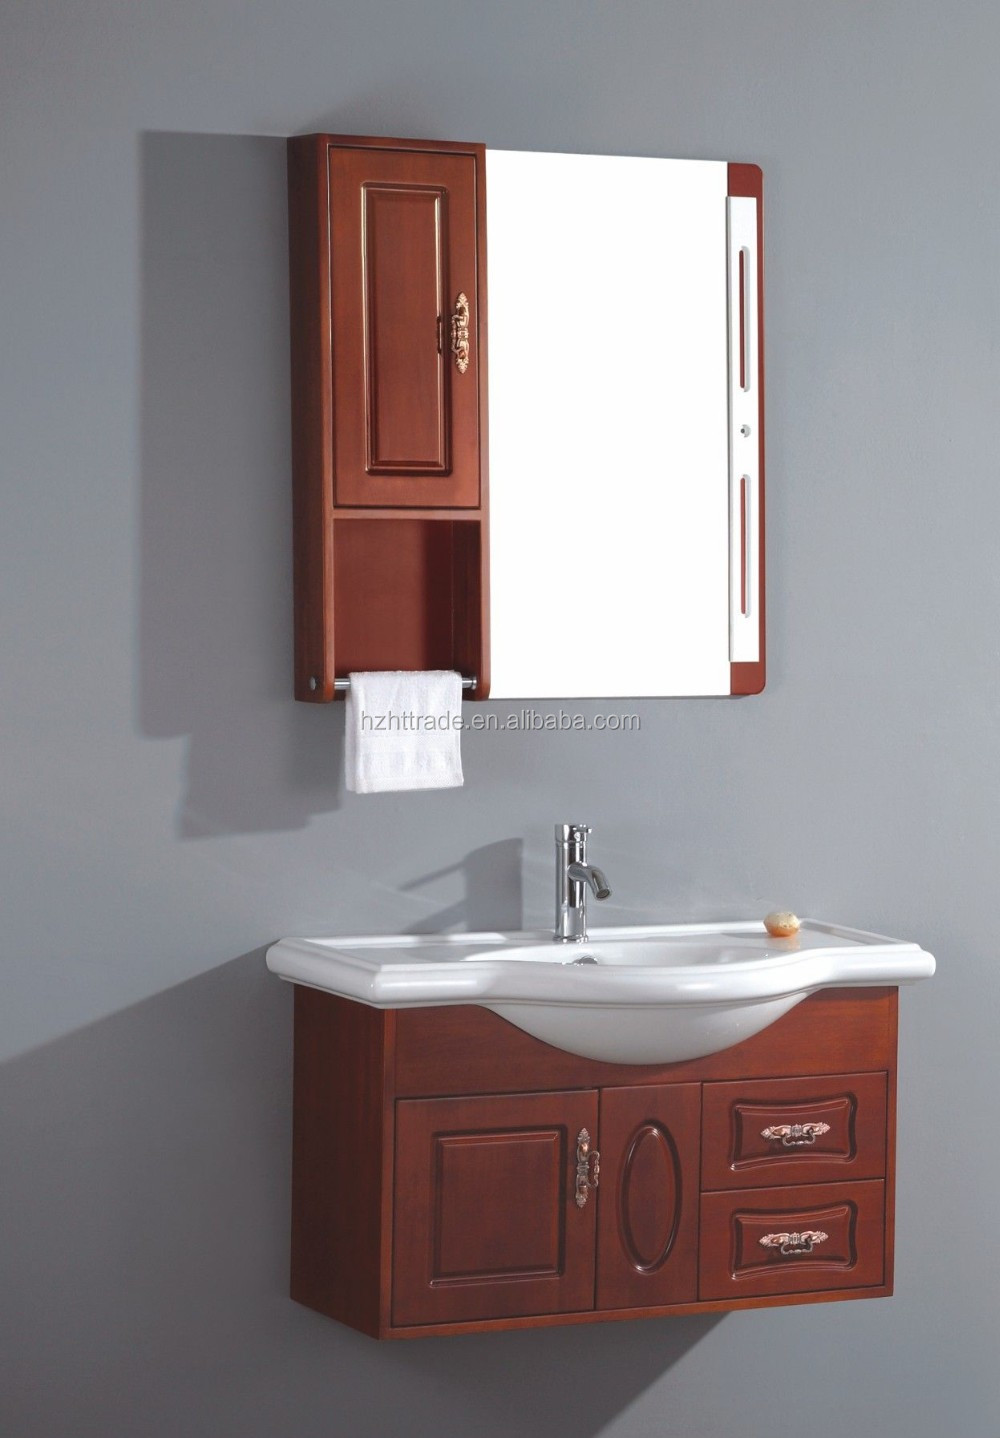 Wall Hung New Sink Makeup Vanity Cheap All Wood Bathroom Vanity Buy All Wood Bathroom Vanity